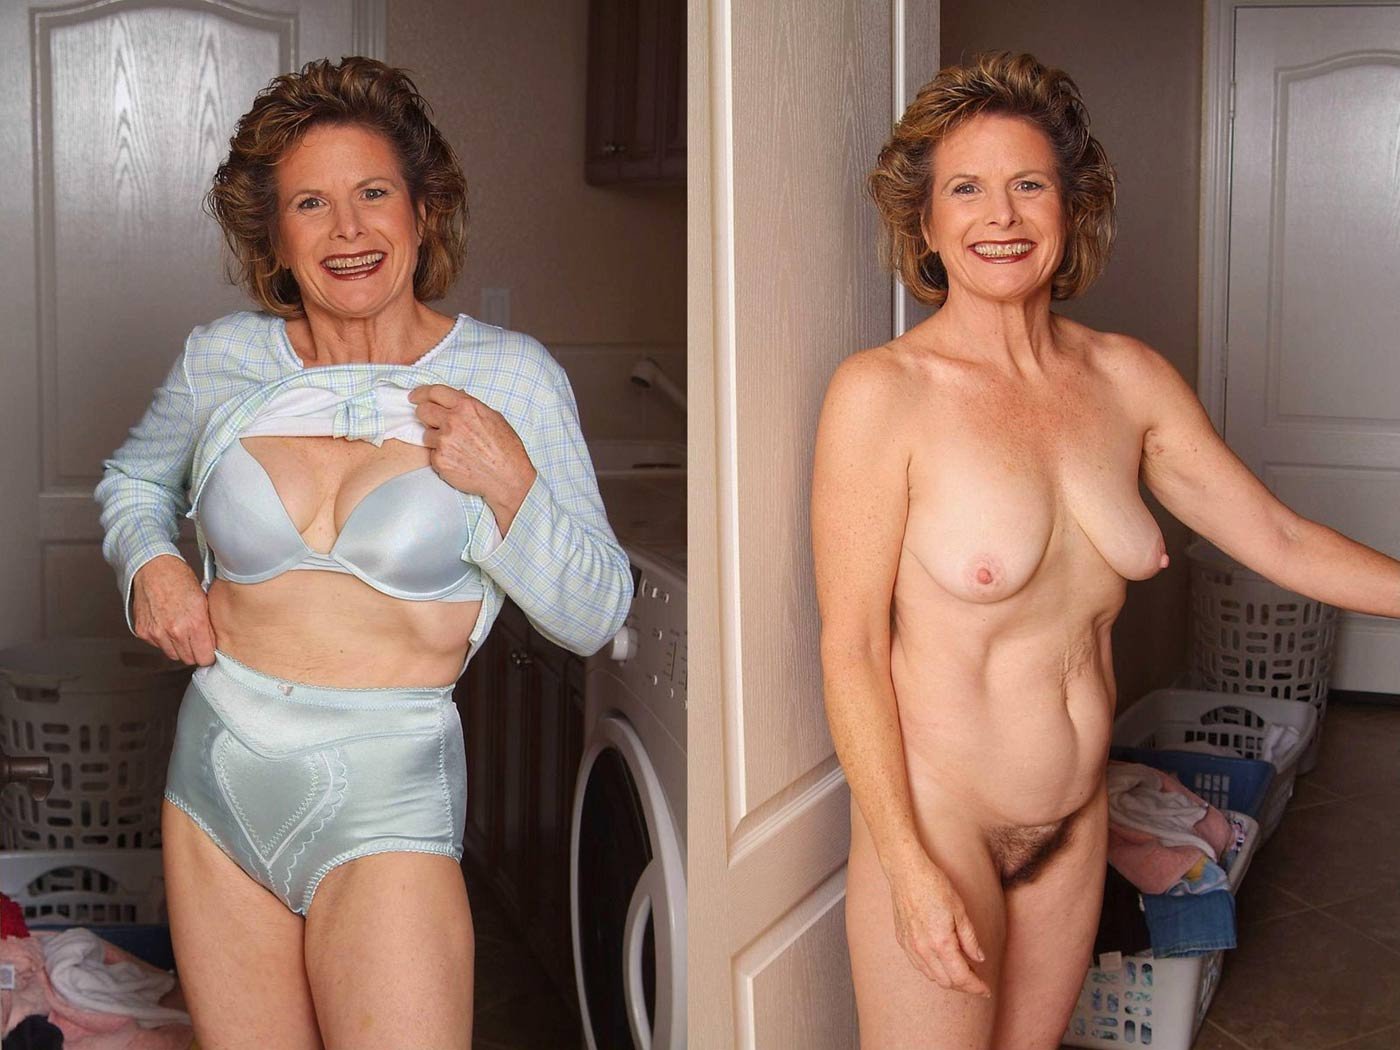 Opinion the Hairy nude milf before and after long